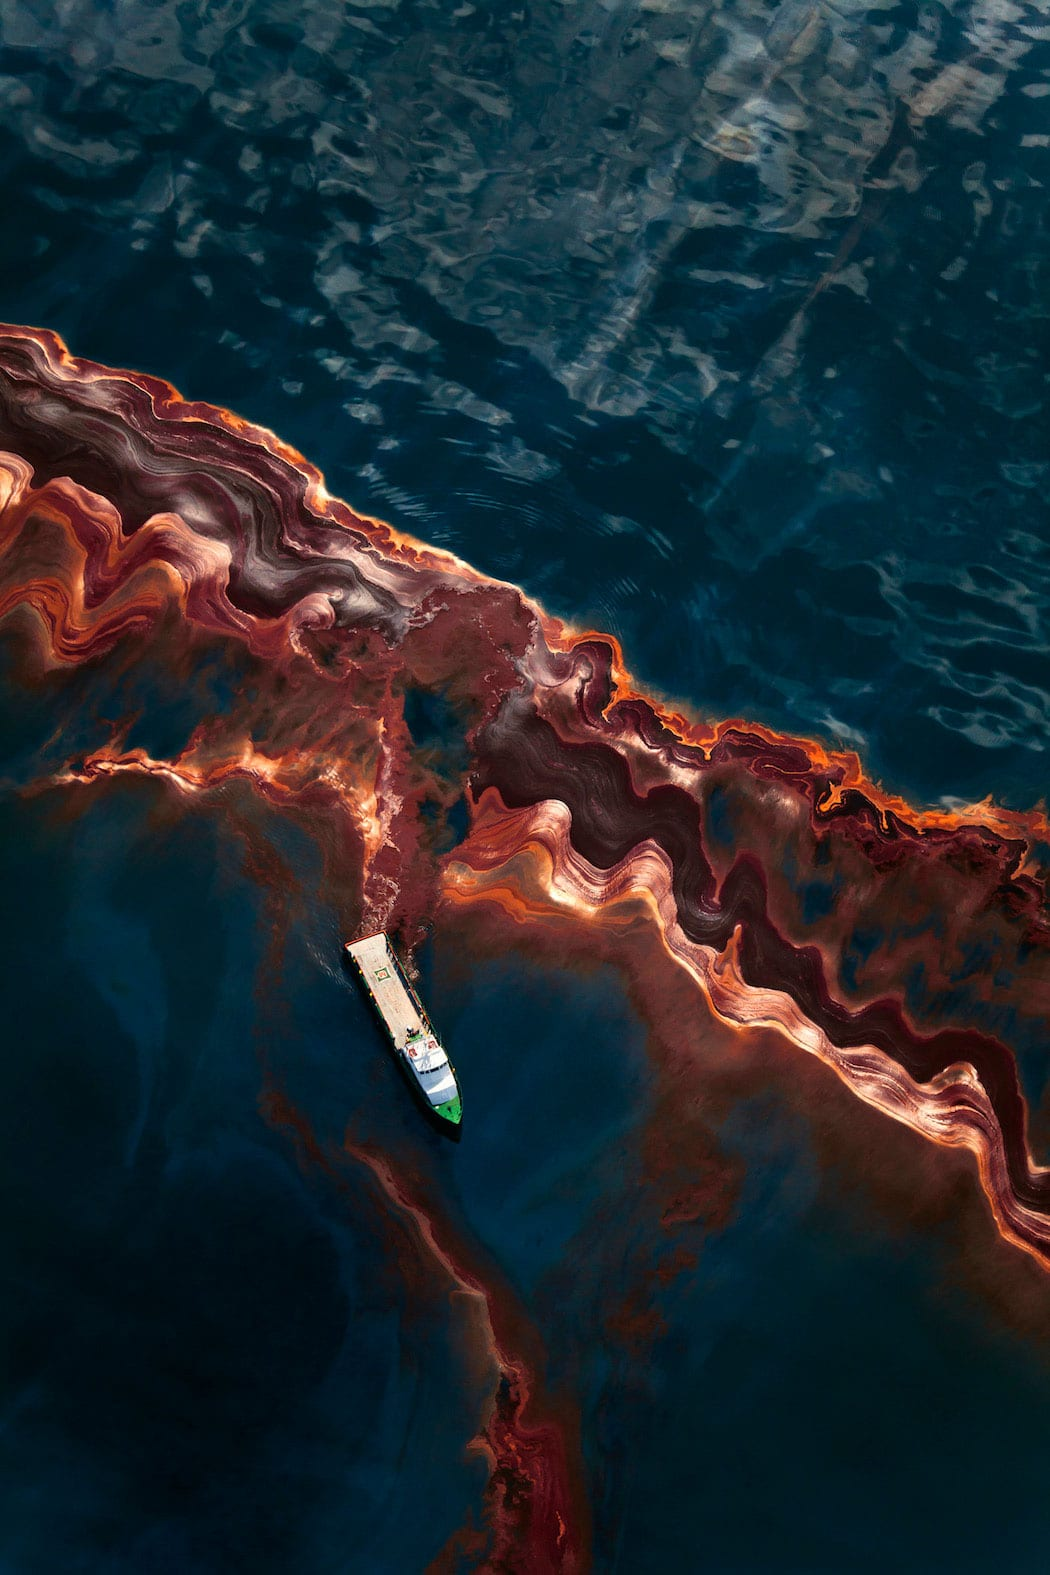 Deepwater Horizon Gulf Oil Spill by Daniel Beltra | Yellowtrace